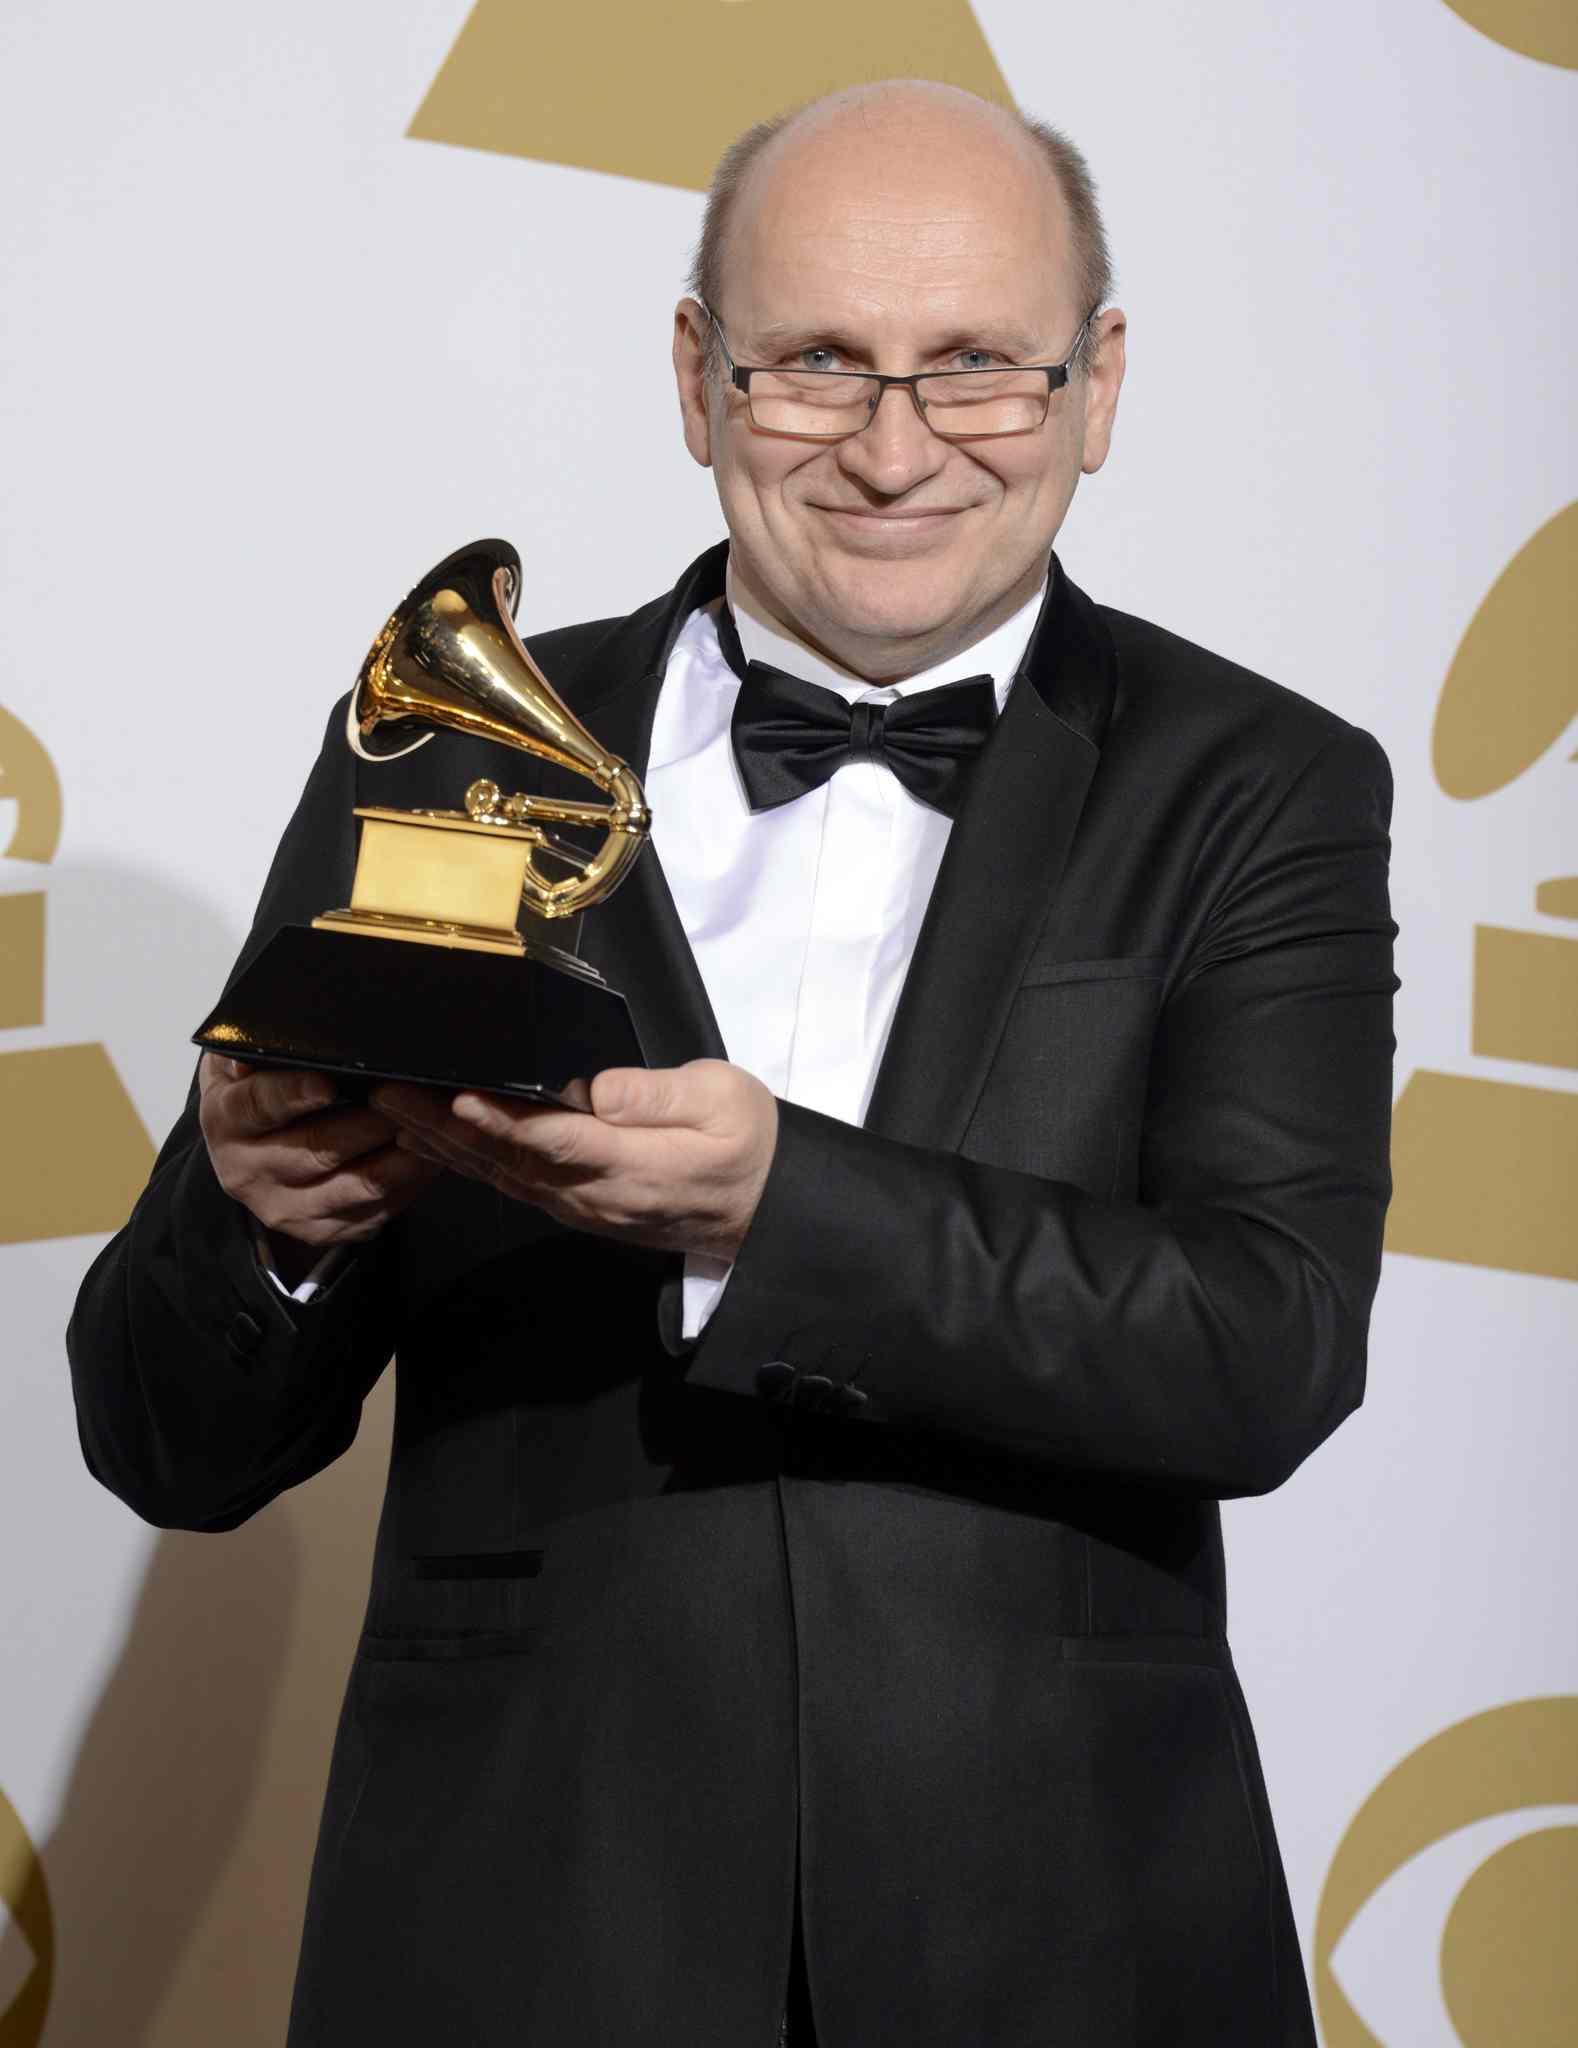 Wlodzimierz Pawlik poses  with the award for best large jazz ensemble album for Night In Calisia.